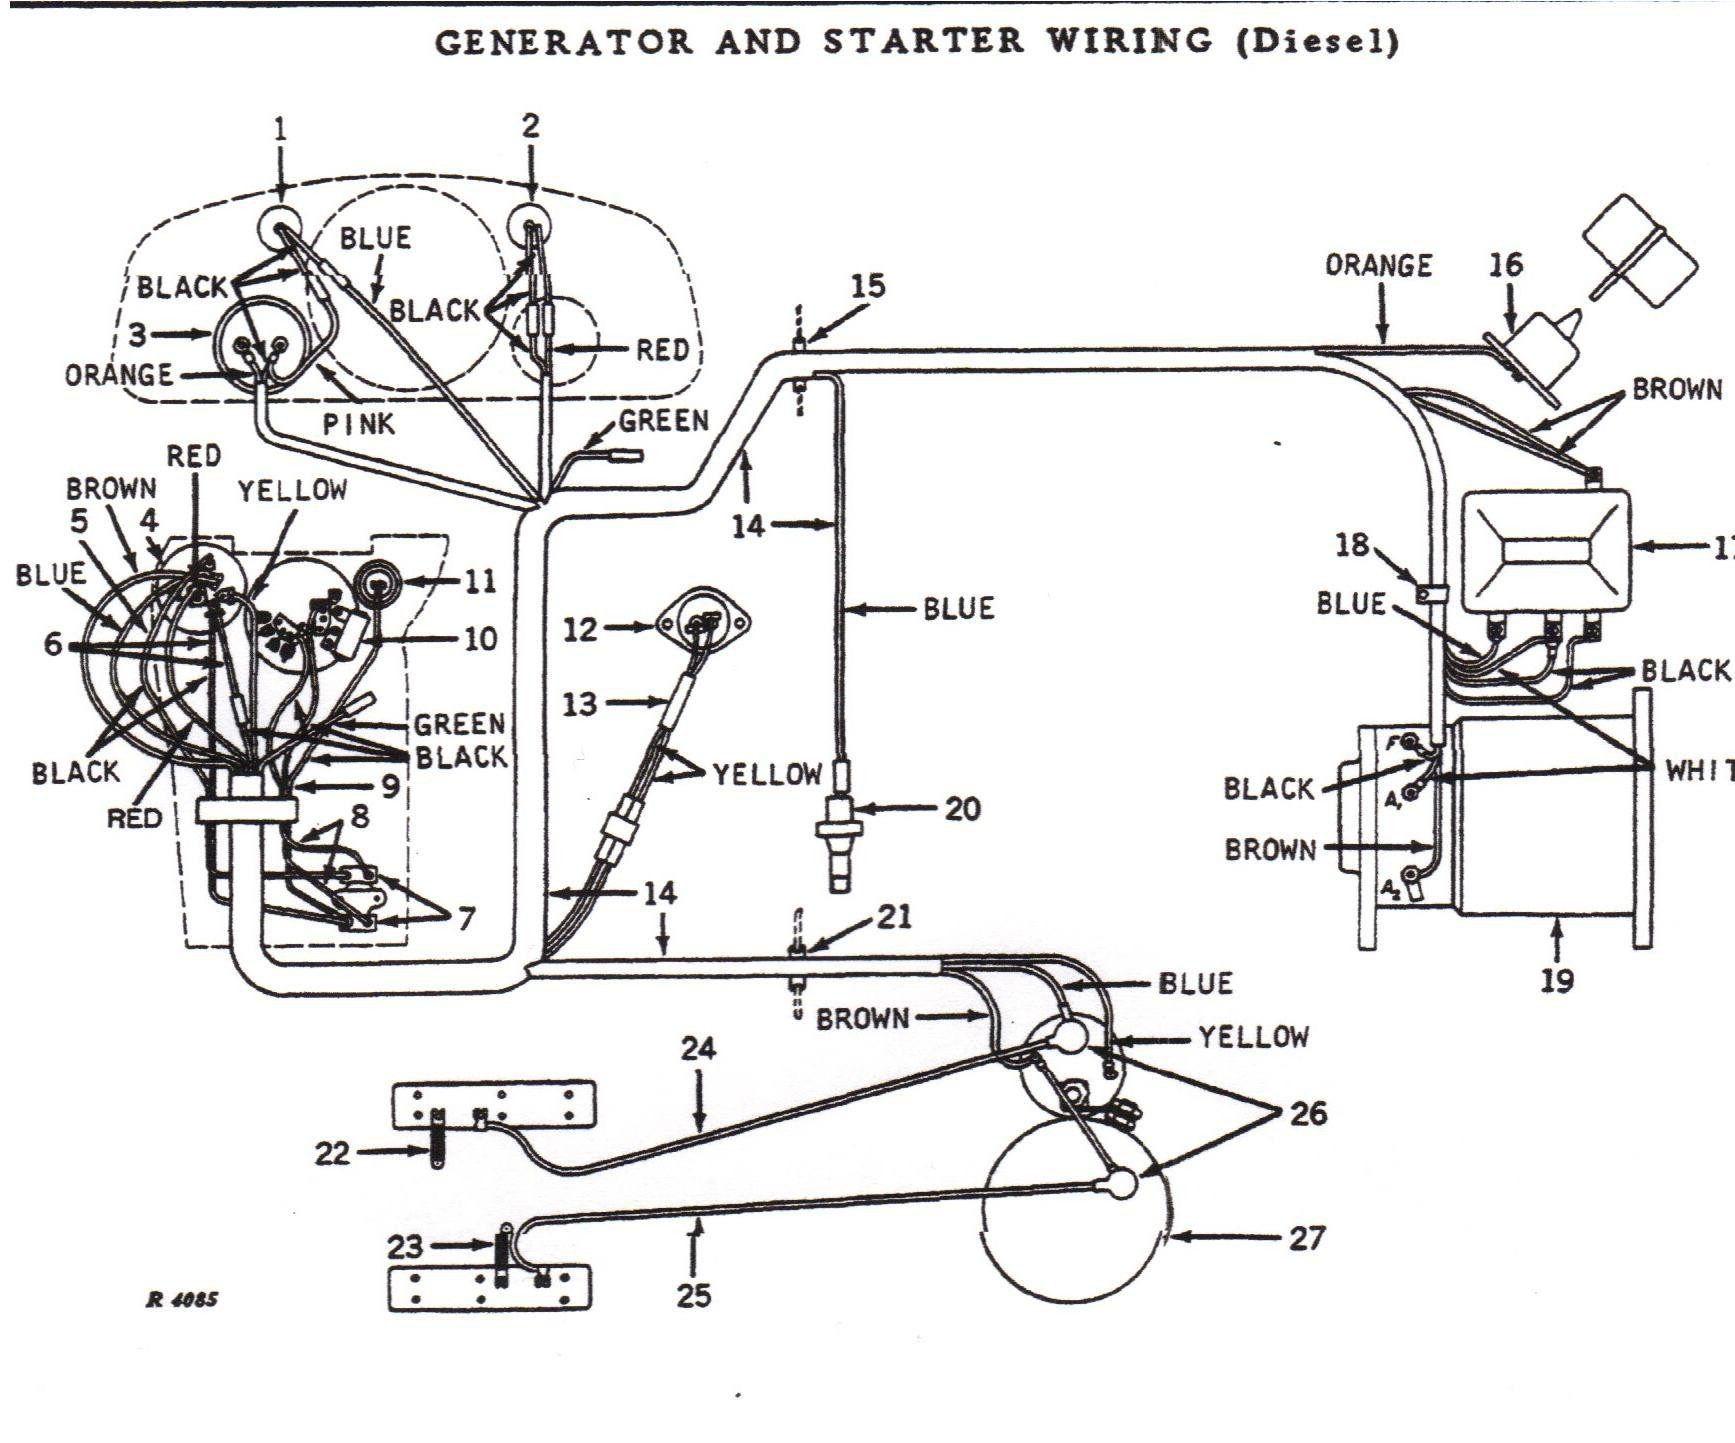 Wiring Schematic For John Deere